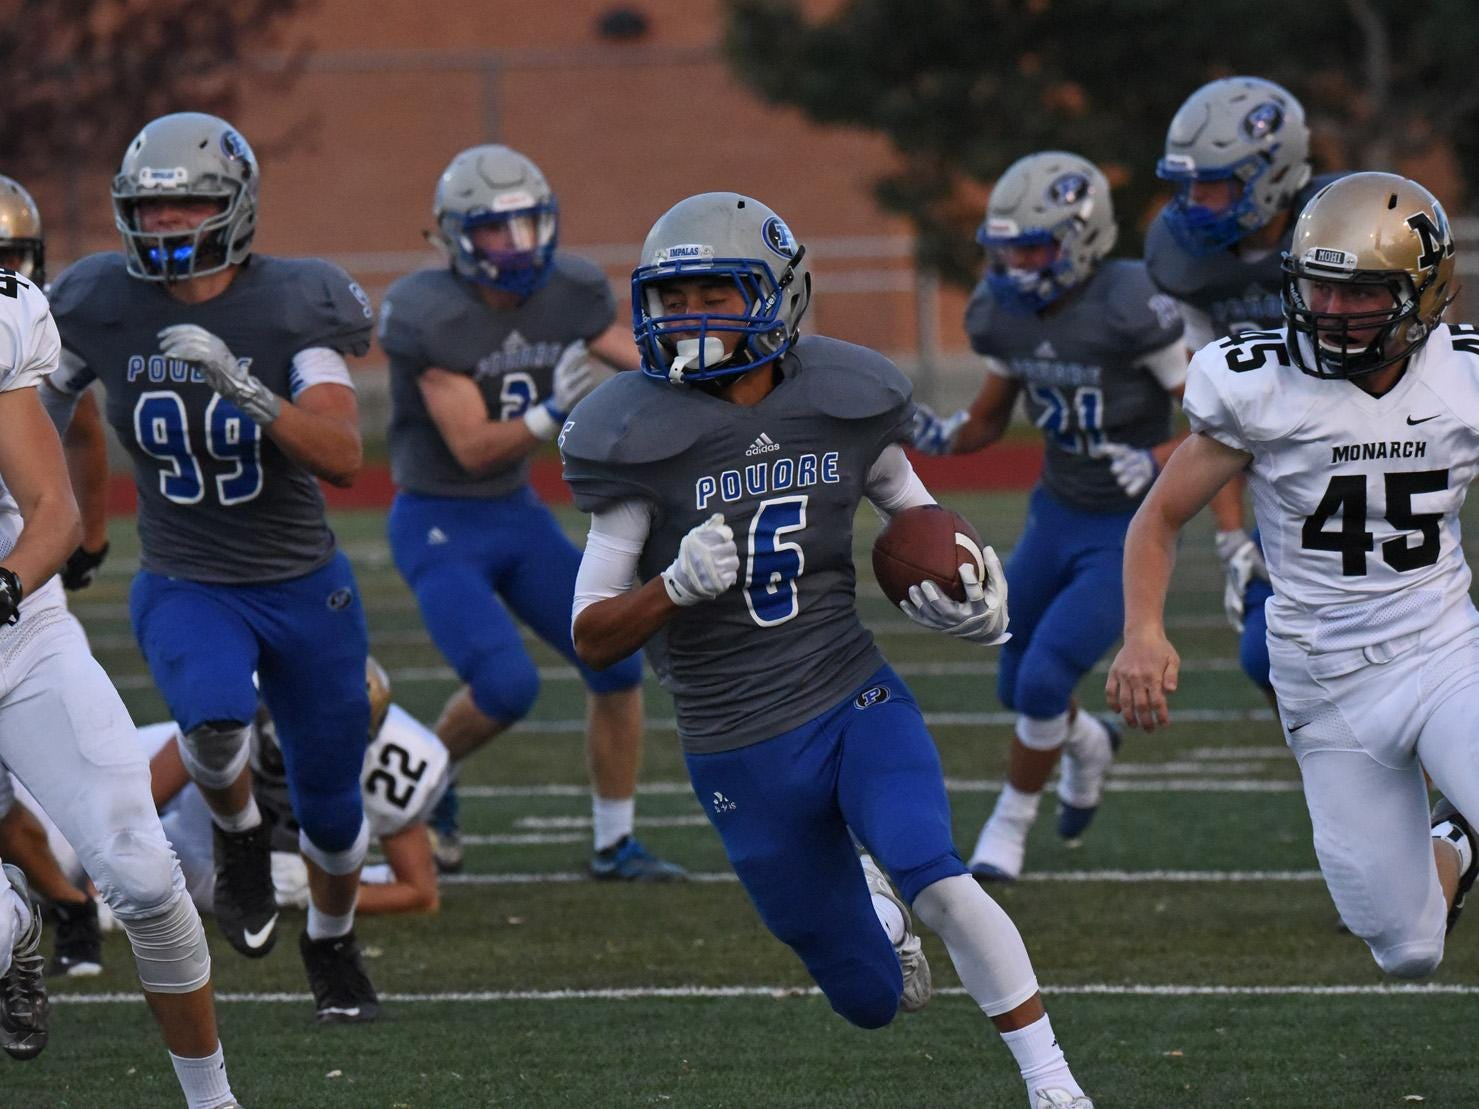 Poudre's Zach Leal is one of the area leaders in receiving yards.